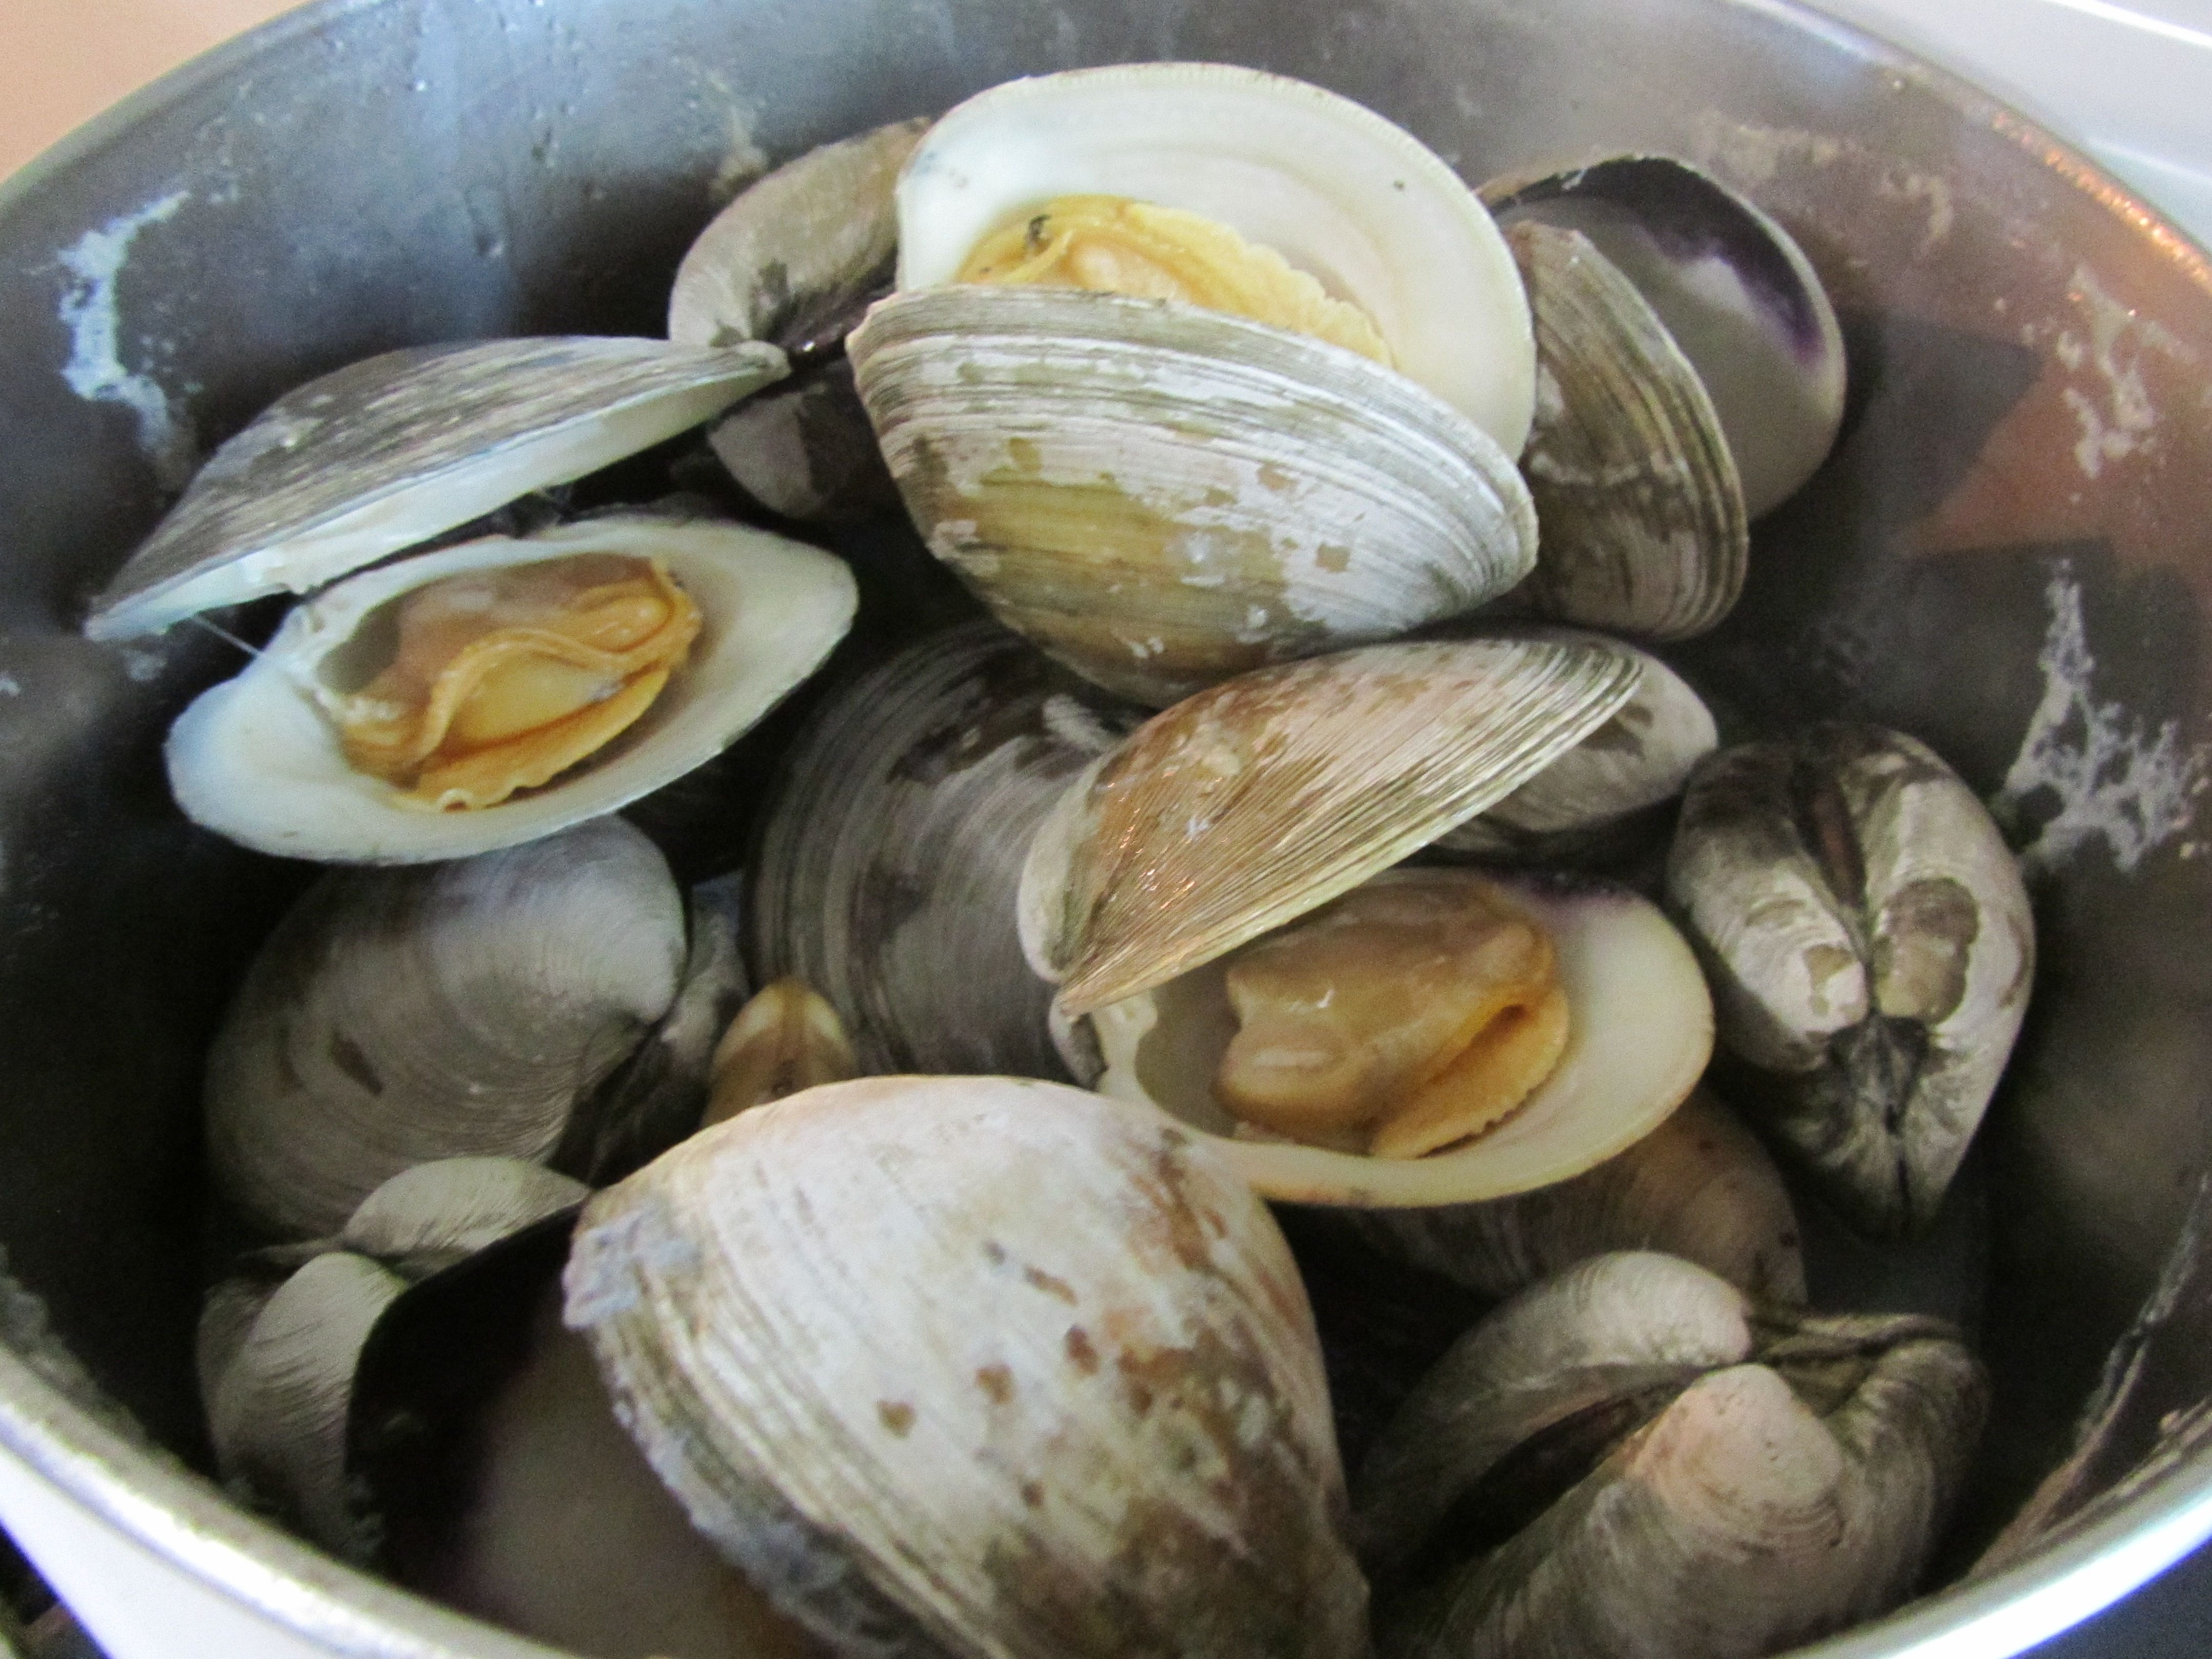 Steamed Cherry Stone Clams When I Was Younger My Mom Used To Make These And They Were So Good Food Fresh Ingredient Cooking